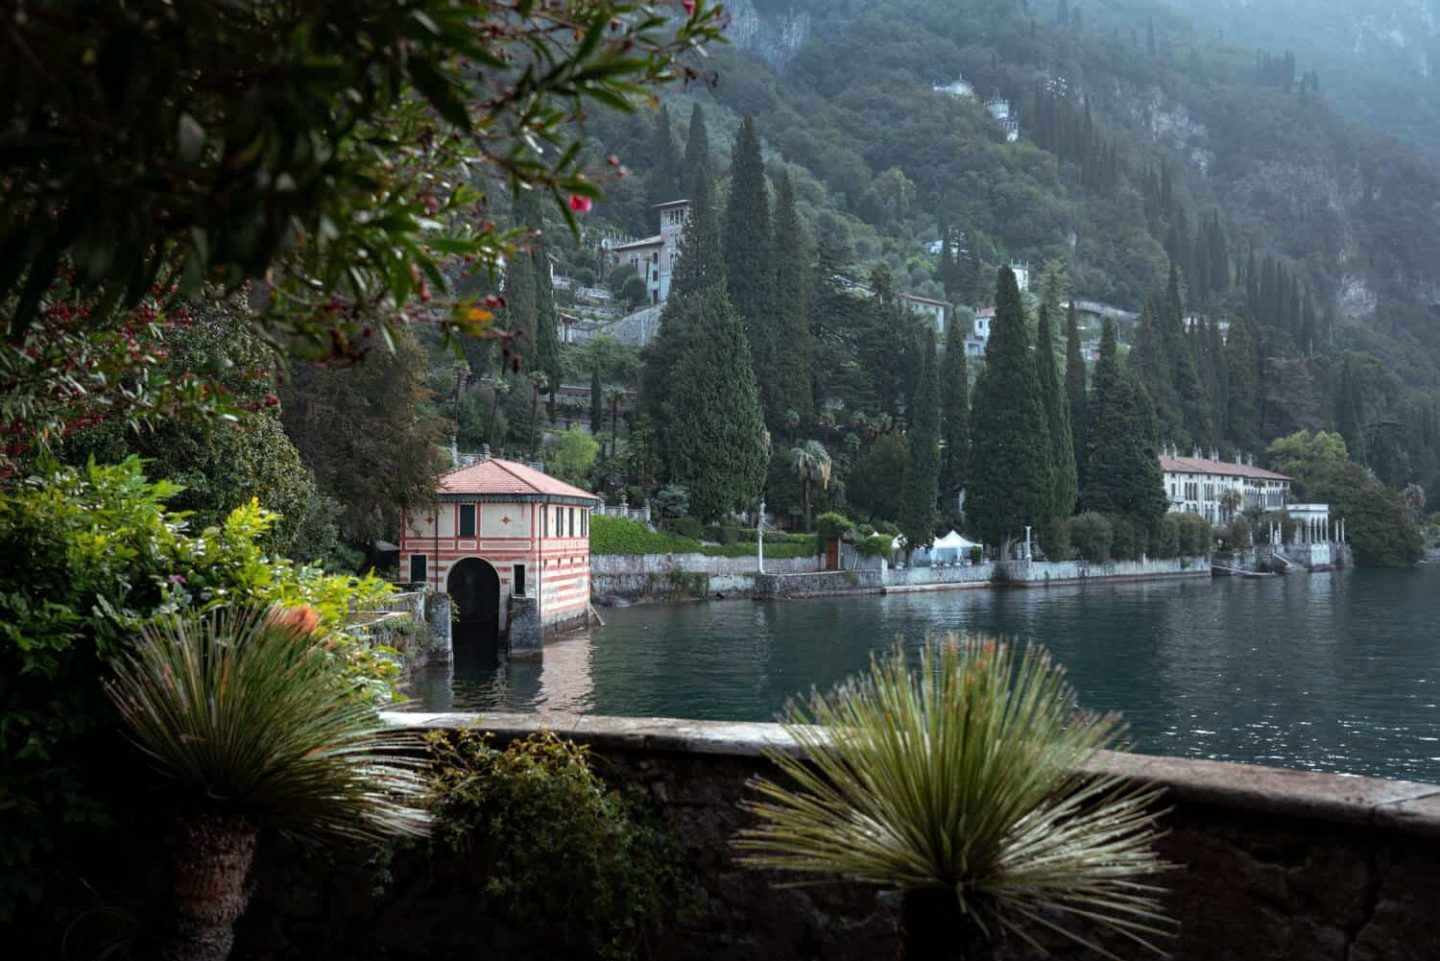 A view of the Mediterranean cypress trees lining the shore of Lake Como from Villa Cipressi.